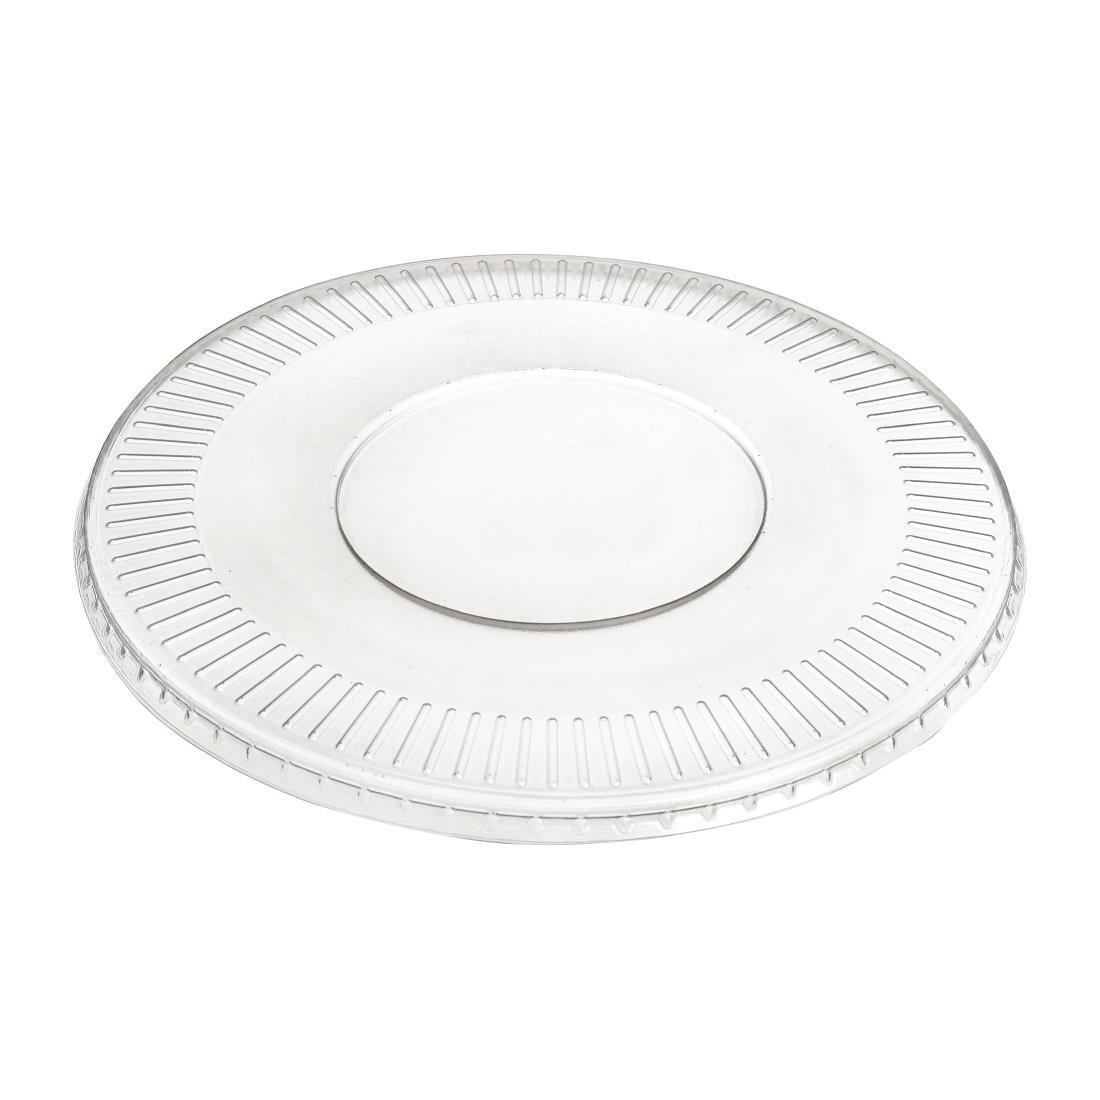 FD930 - Solia Recyclable Polypropylene Mix Bagasse Bowl Lids 700ml  - Pack of 50 - FD930